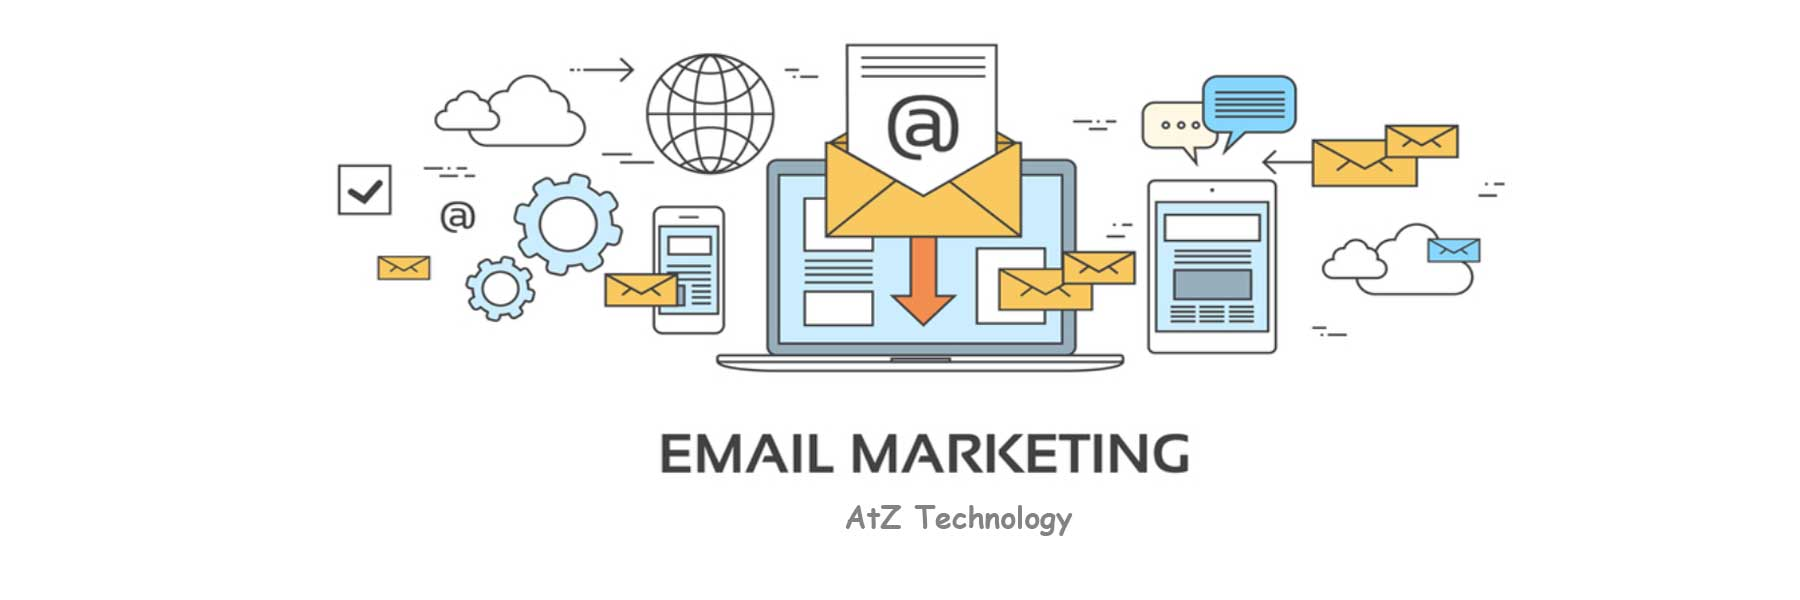 Email marketing aims at Grabbing the Attention